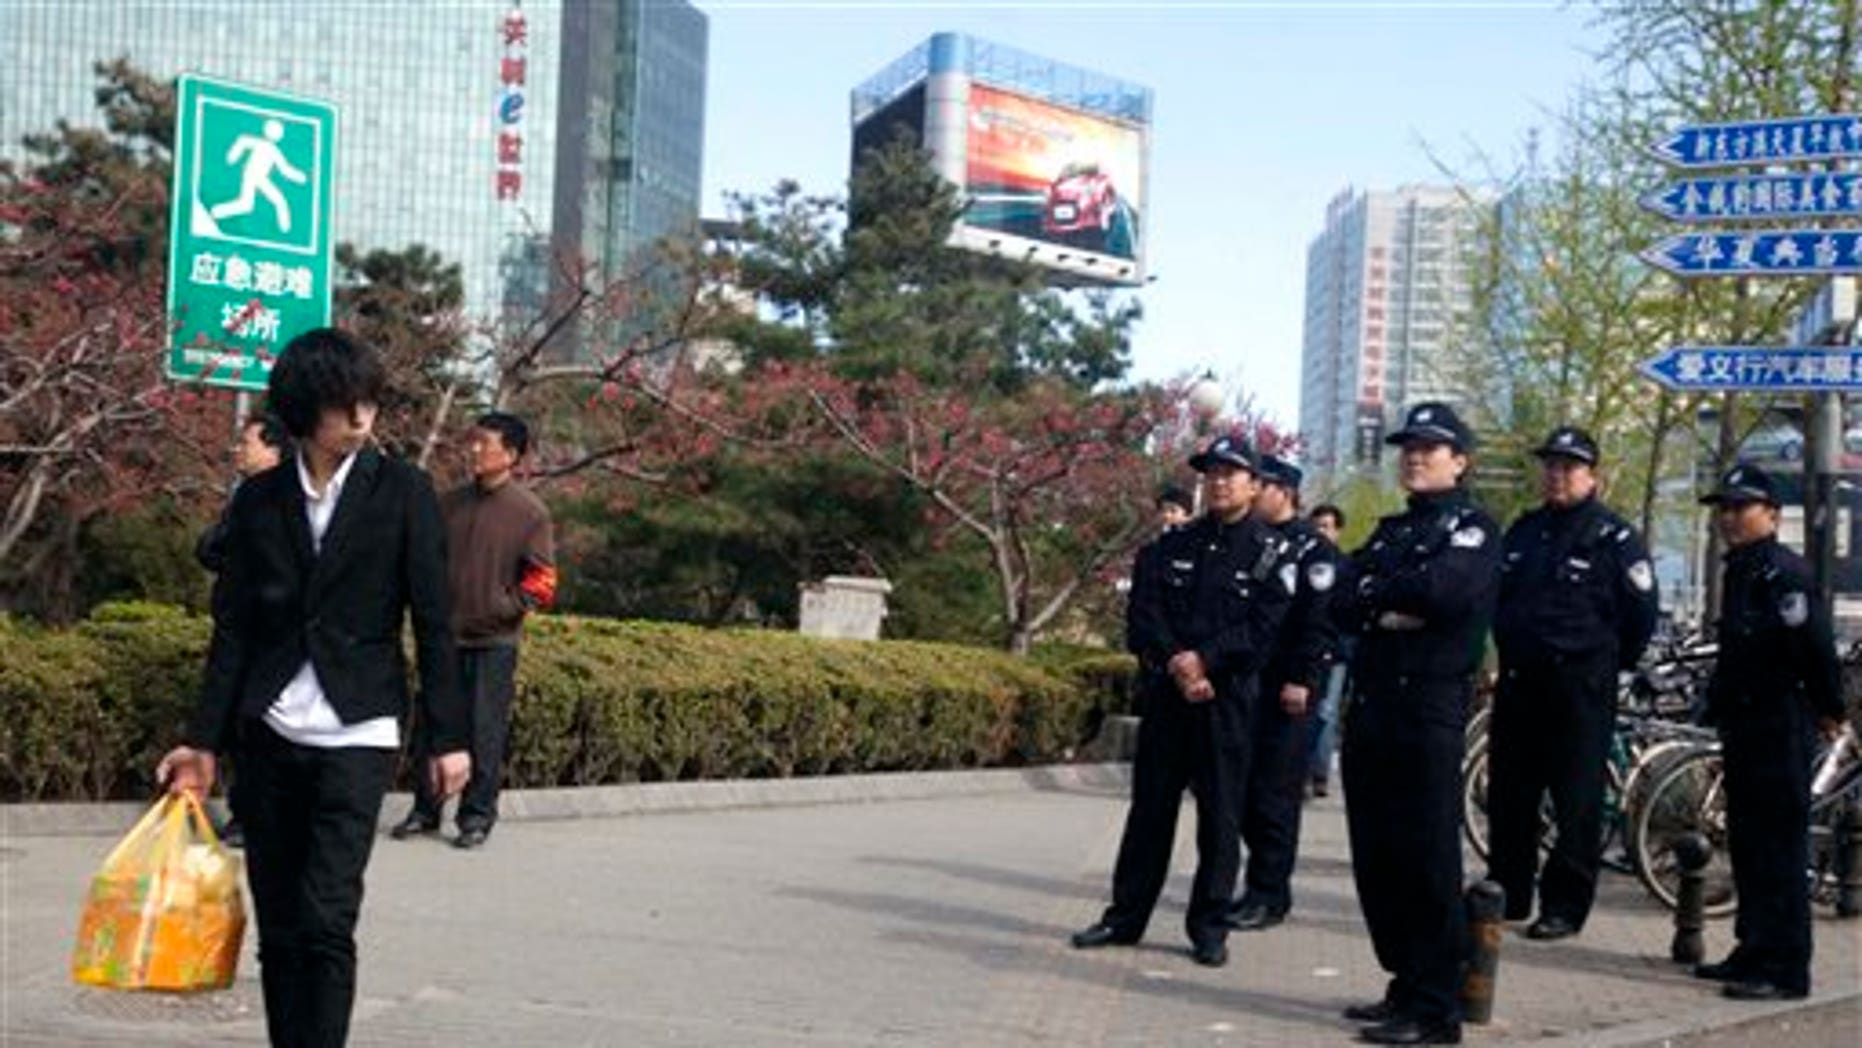 April 10: Chinese police officers watch an area near a building that leaders of the unregistered Shouwang house church had told parishioners to gather in Beijing, China.  Beijing police on Sunday detained at least a dozen worshippers from the Christian house church who were trying to hold services in a public space after they were evicted from their usual place of worship. (AP)